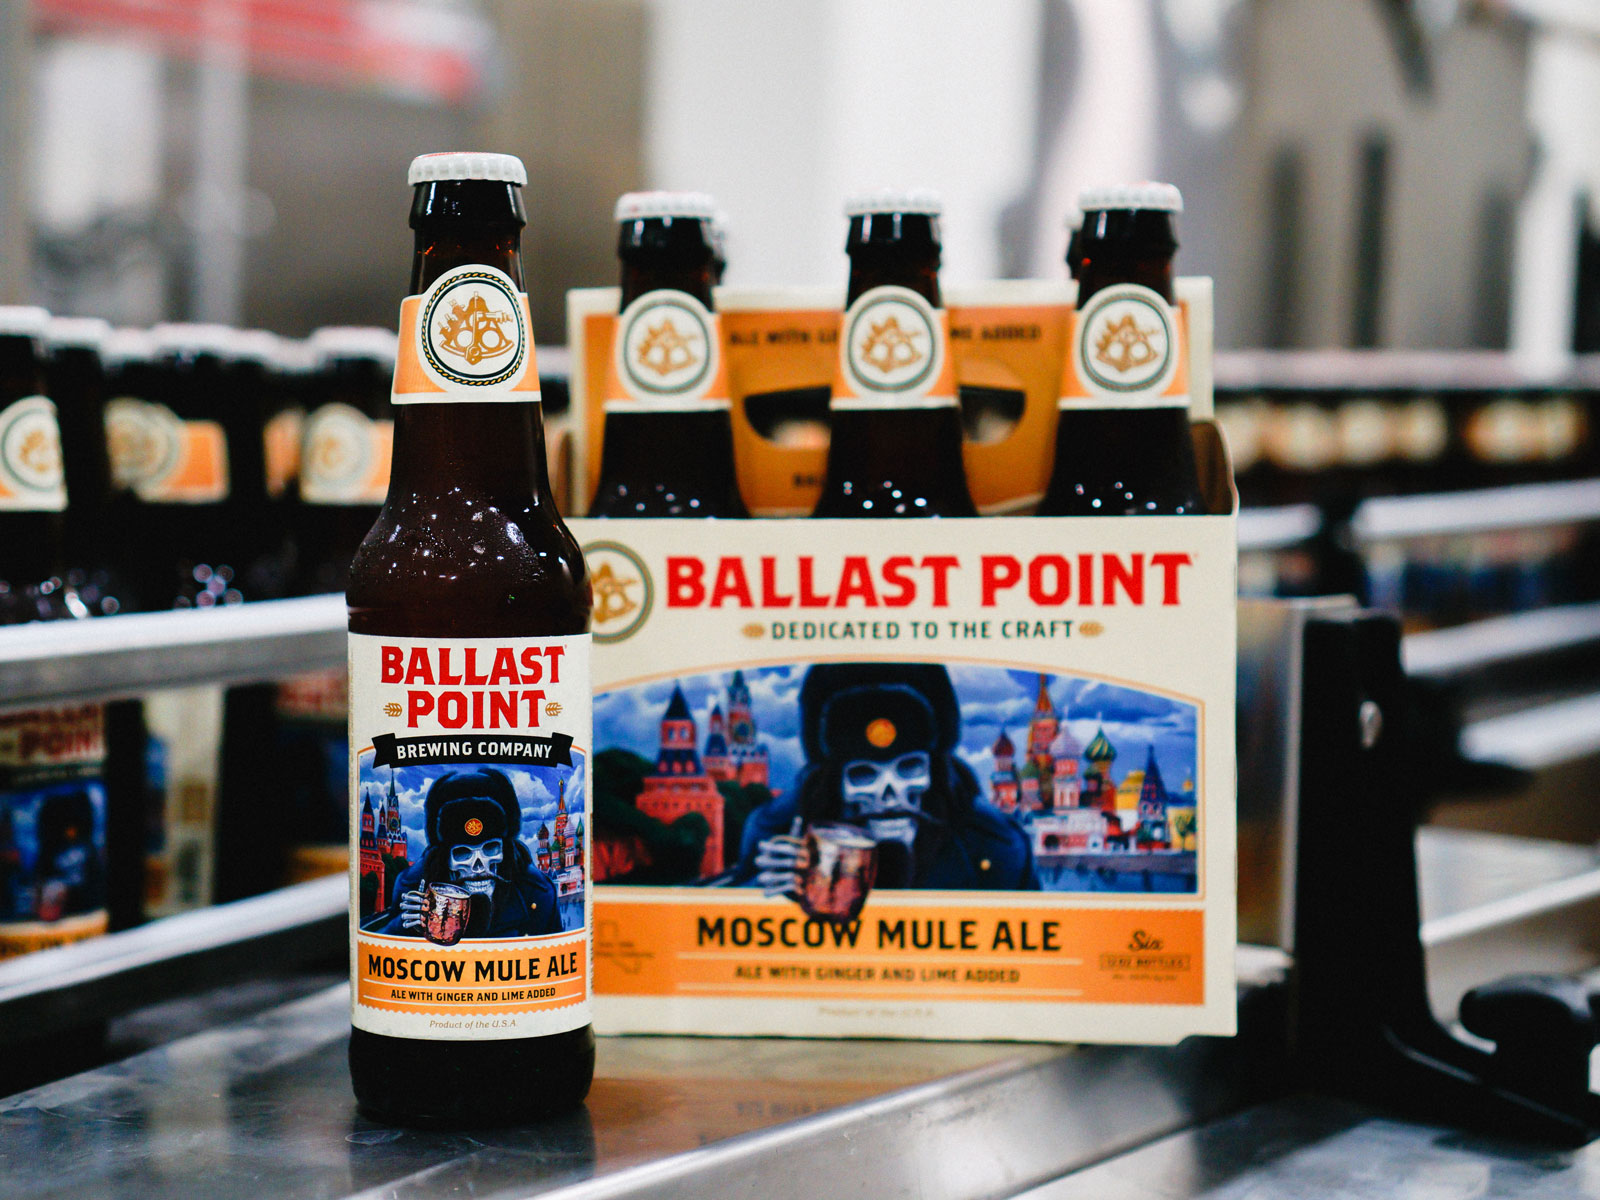 Ballast Point's Moscow Mule Beer Goes Nationwide Just in Time for Spring